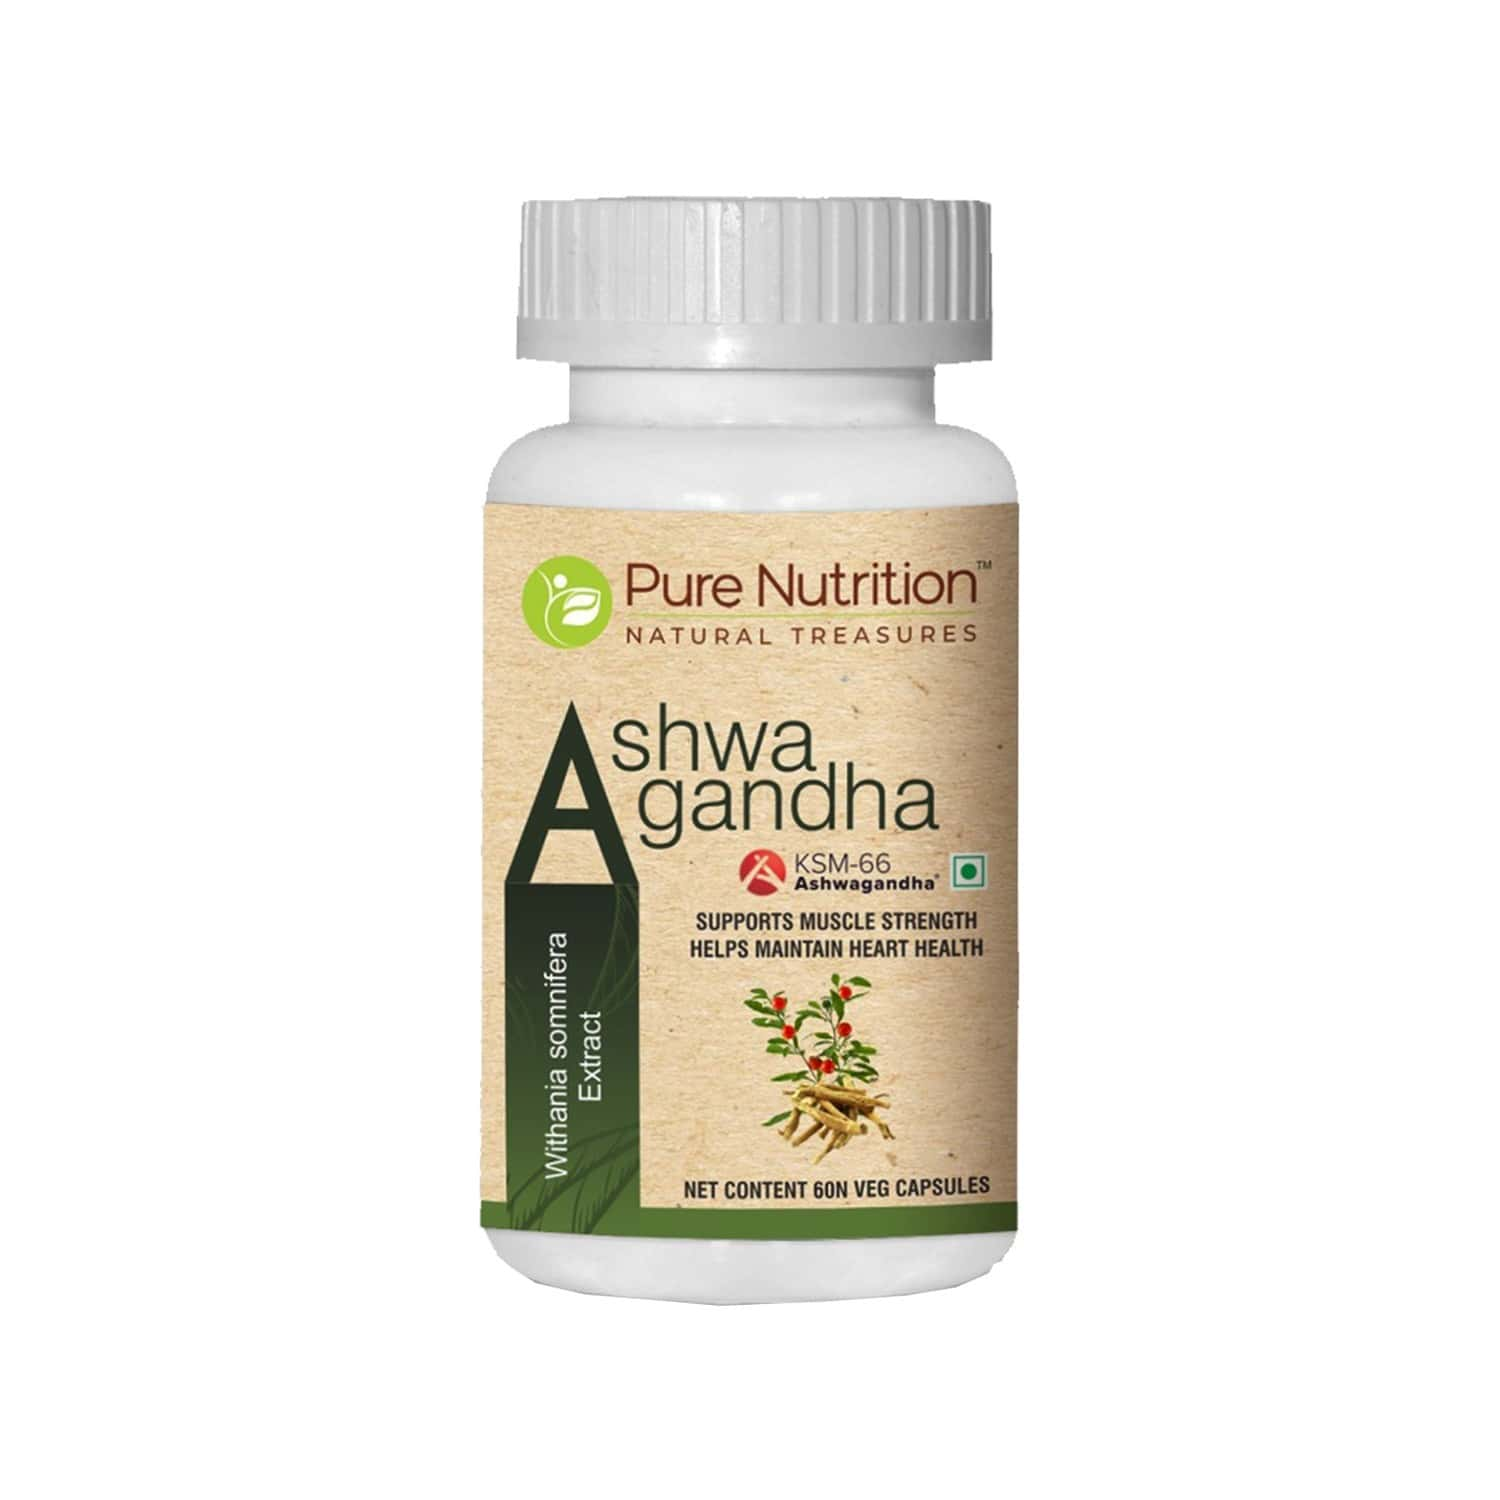 Pure Nutrition Ashwagandha Ksm-66 Supports Muscle Strength And Heart Health- 60 Veg Capsules